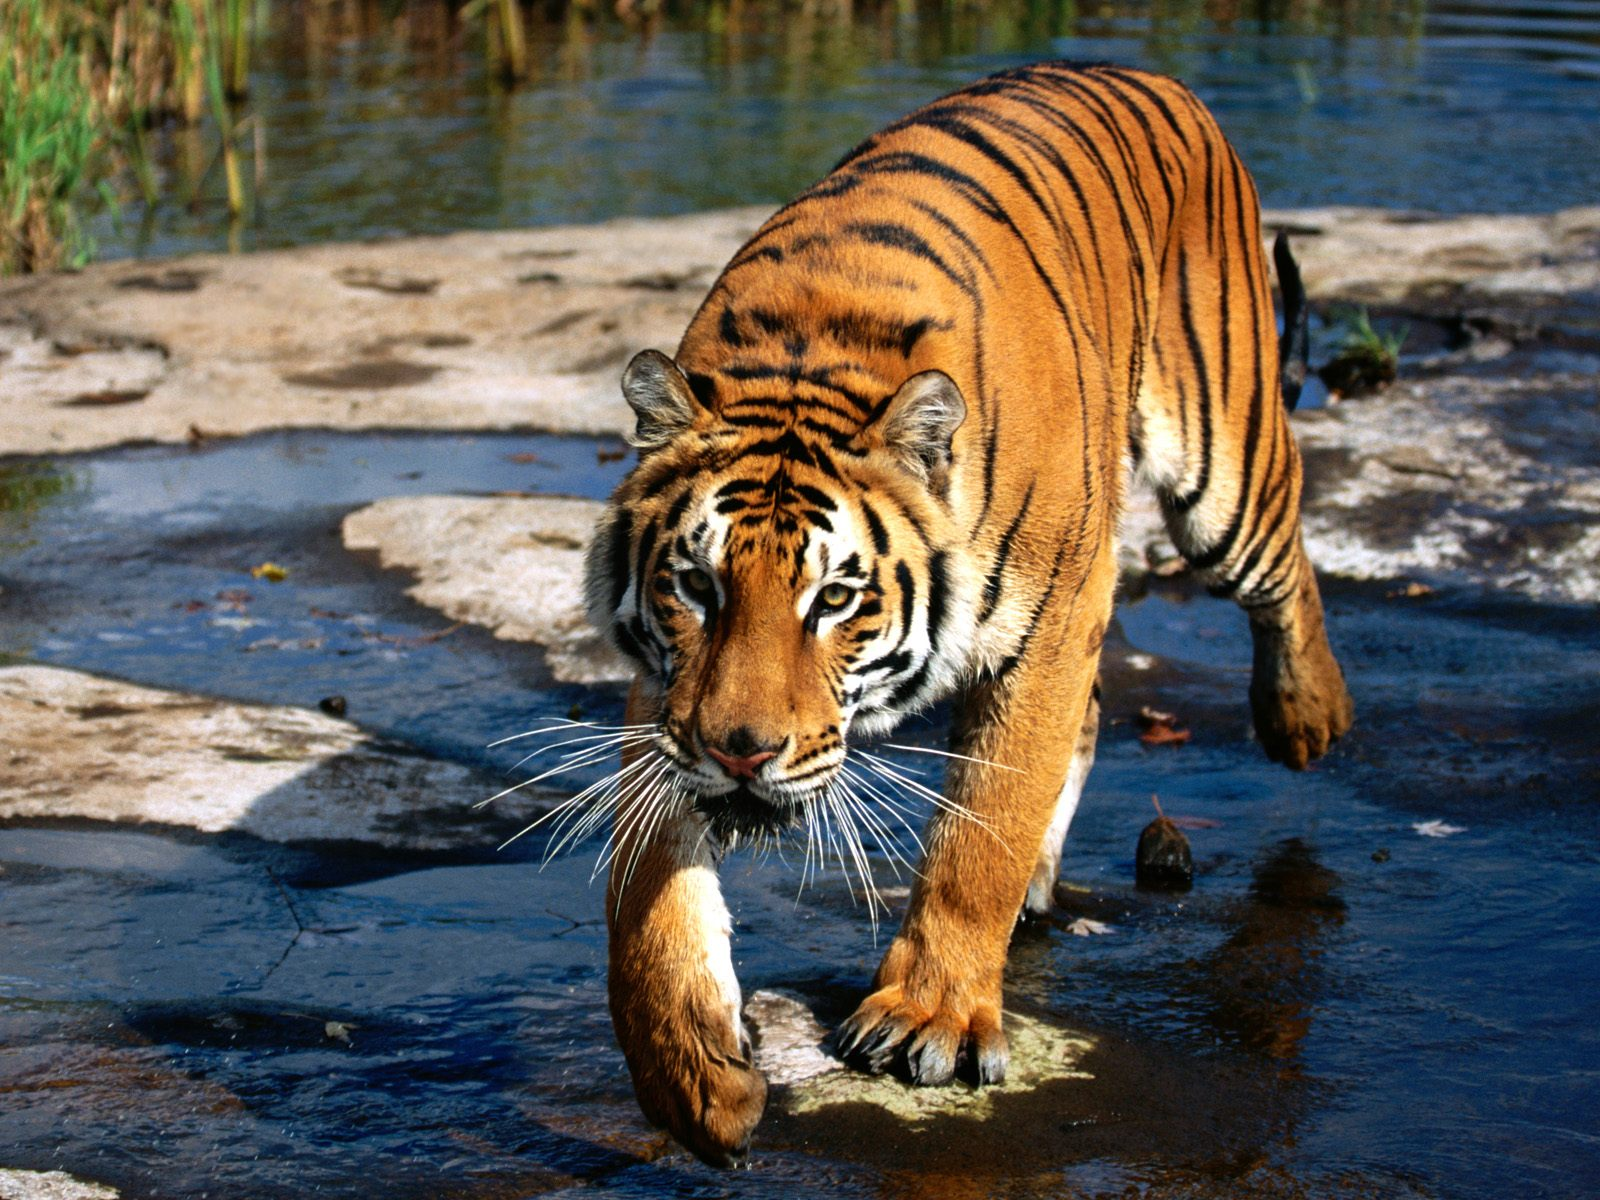 prowler bengal tiger wallpapers - Prowler Bengal Tiger Wallpapers HD Wallpapers